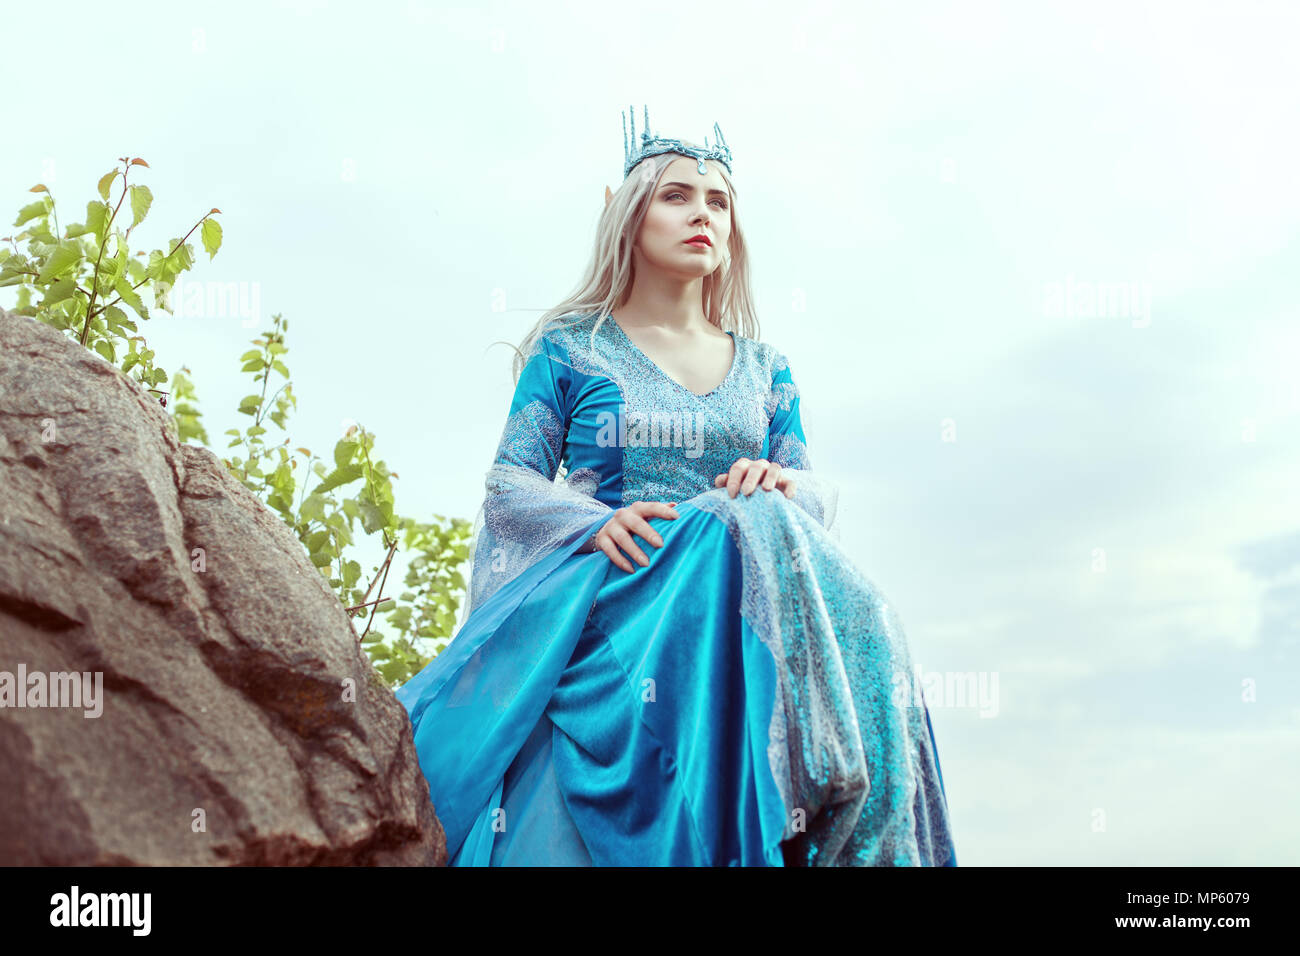 Beautiful elf woman in a blue dress is sitting on the mountain. - Stock Image